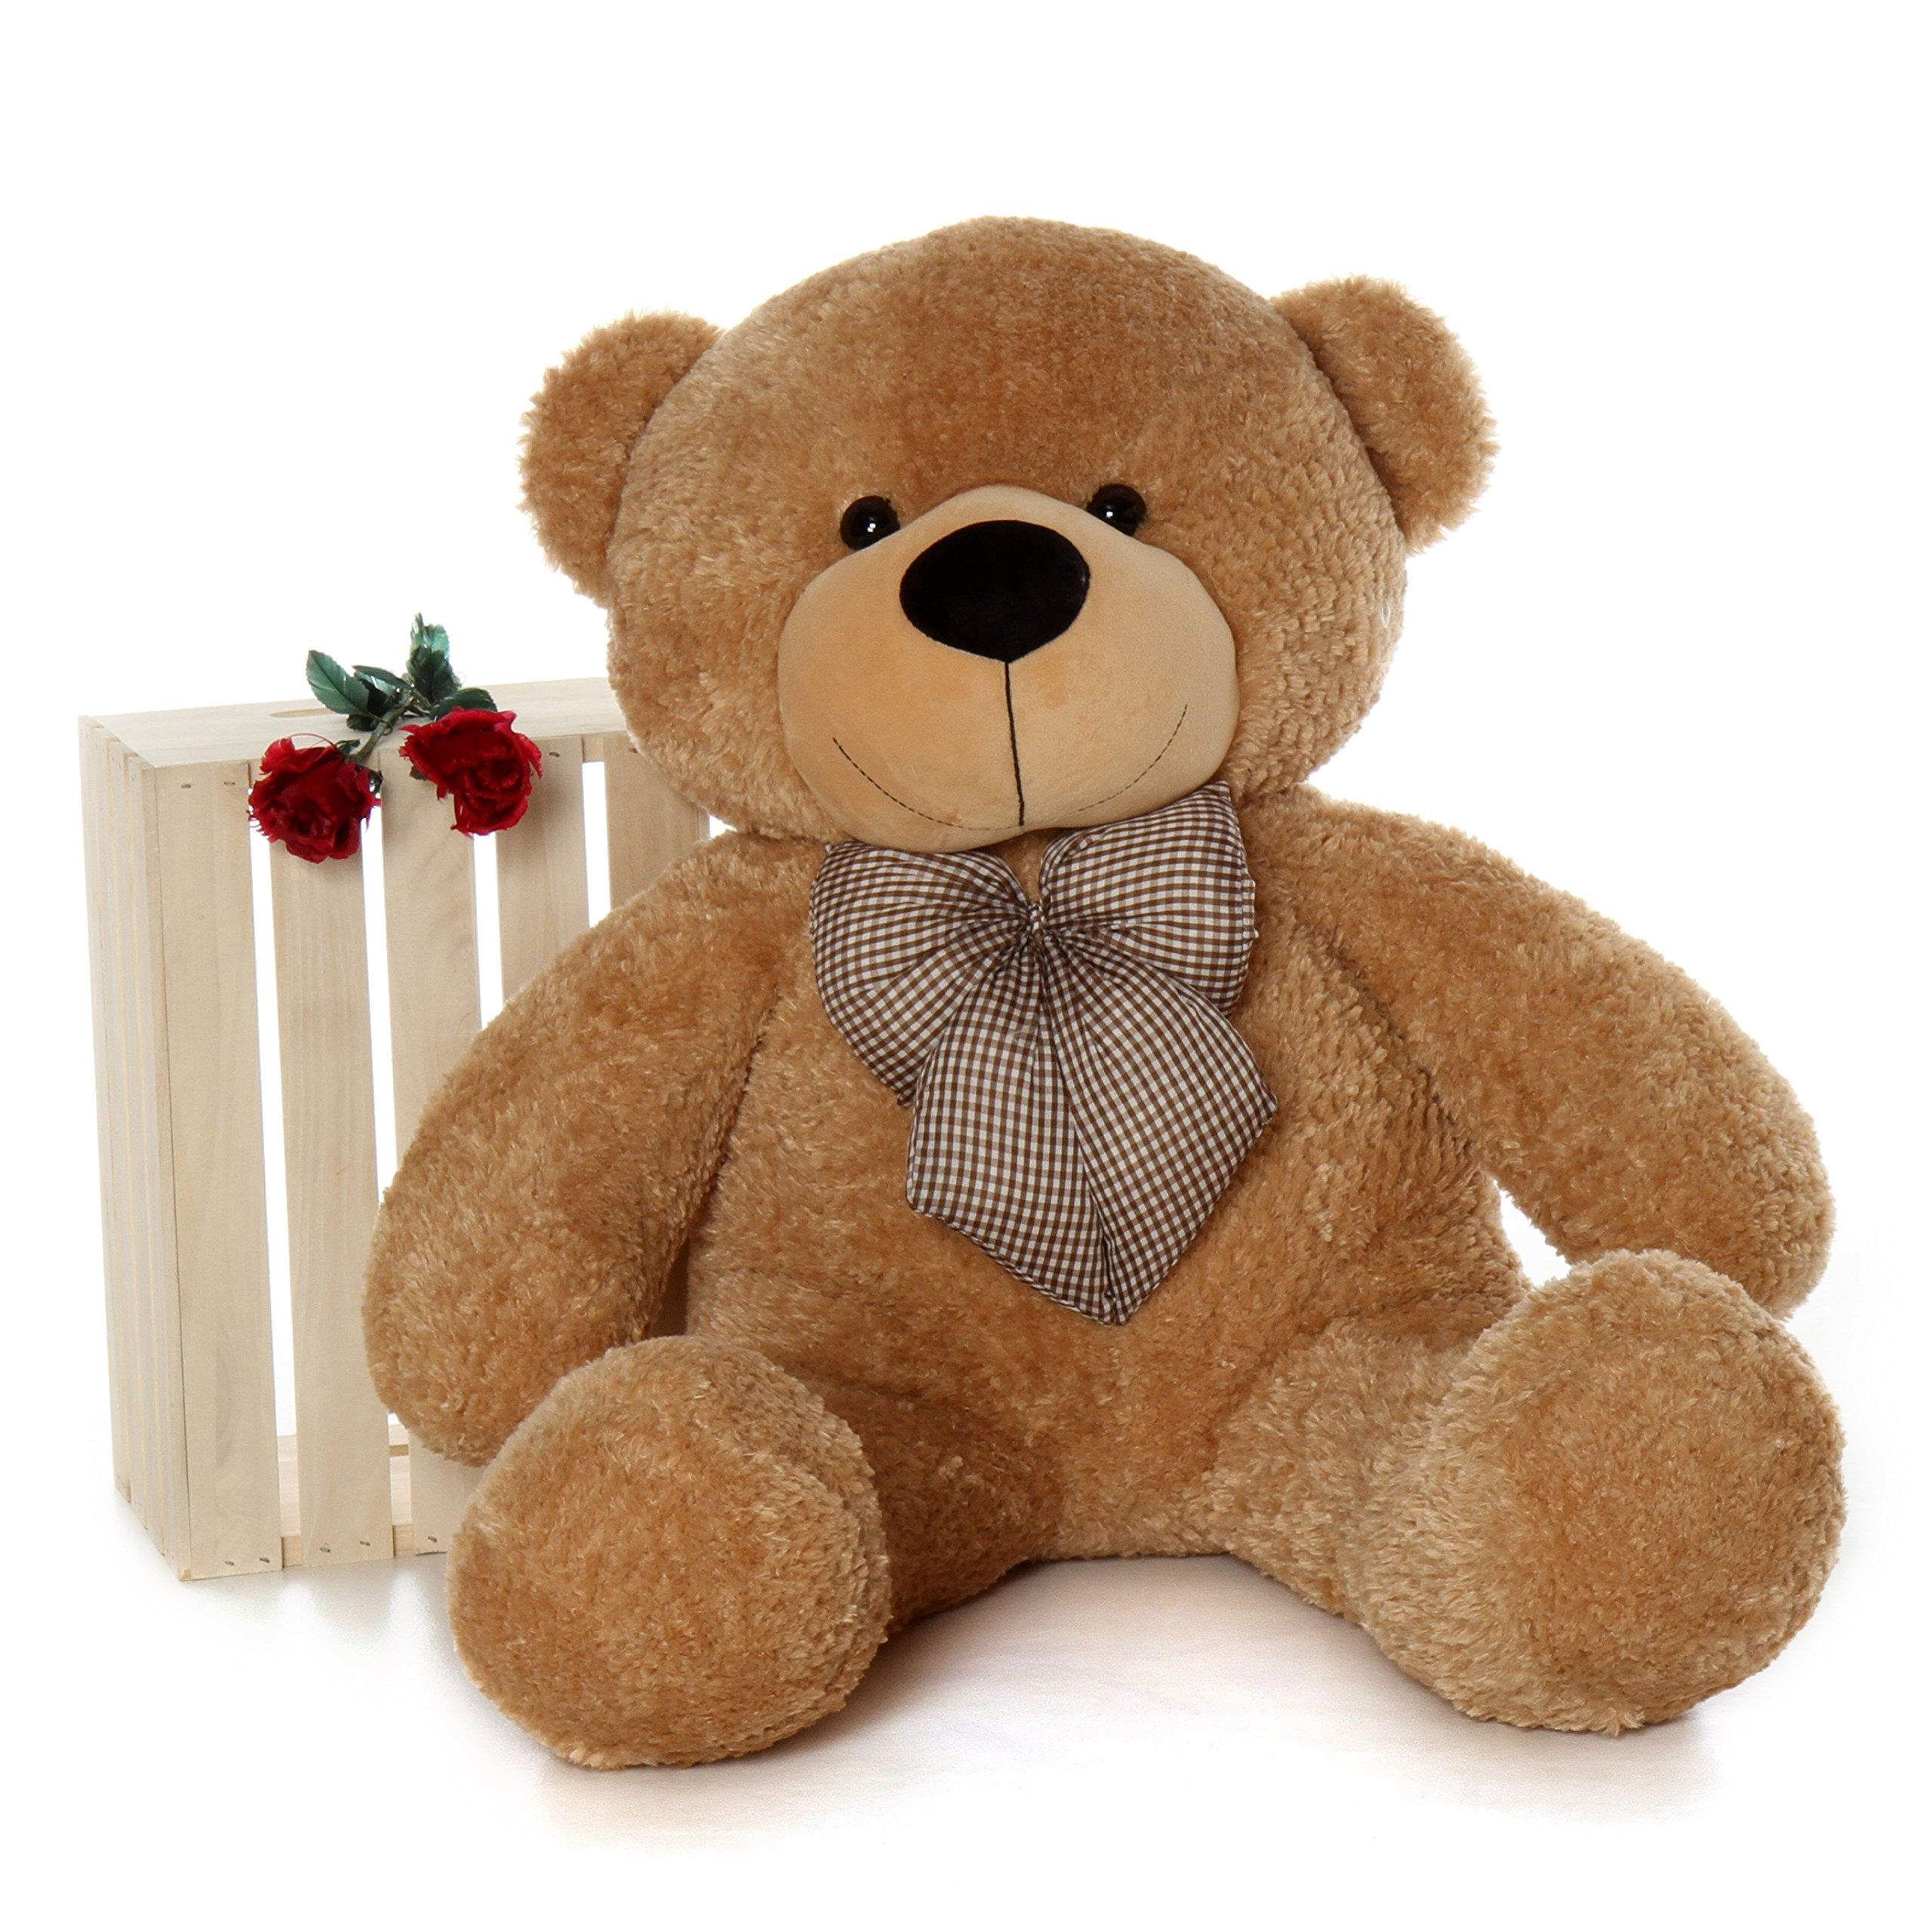 Giant Teddy Brand - 4 Foot Huge Cuddly Stuffed Animal for Girlfriend (Amber Brown) by Giant Teddy